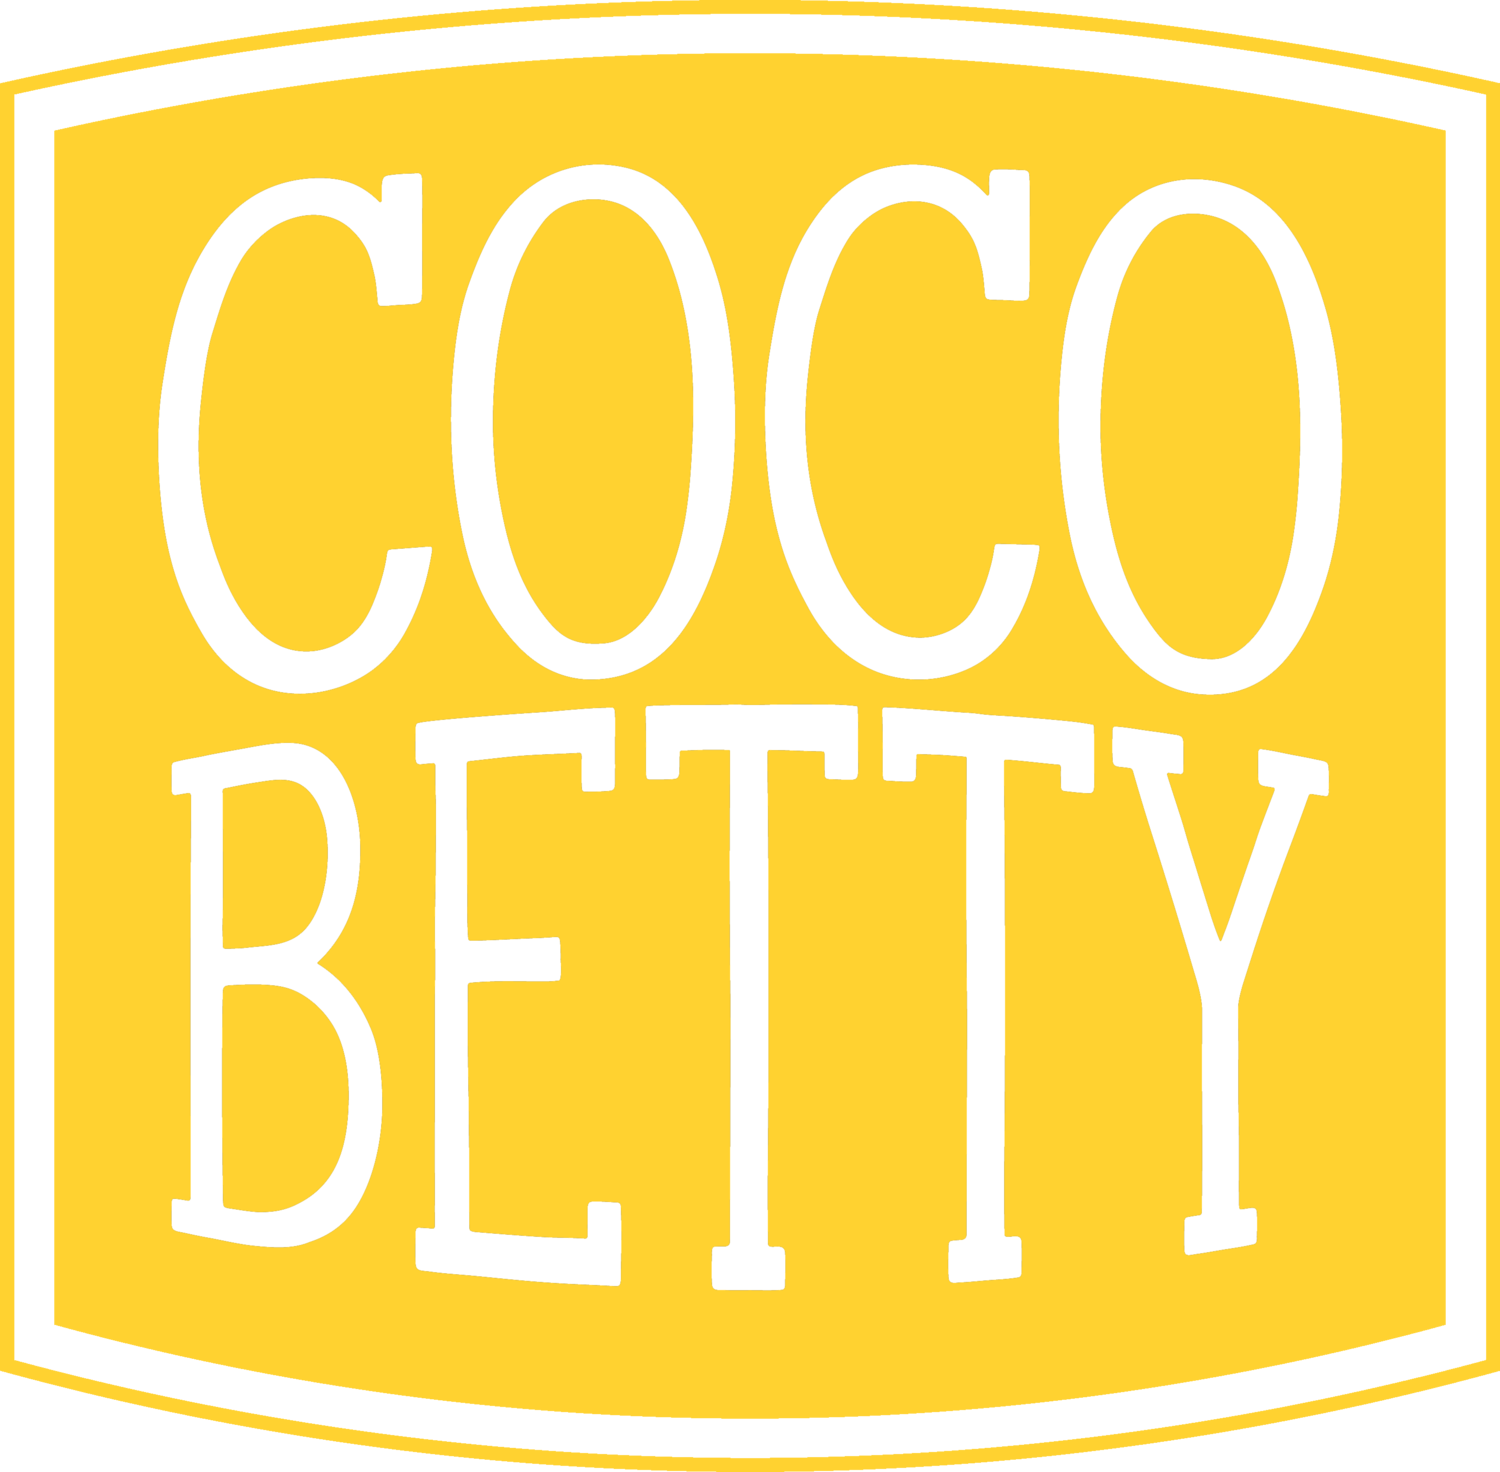 CocoBetty